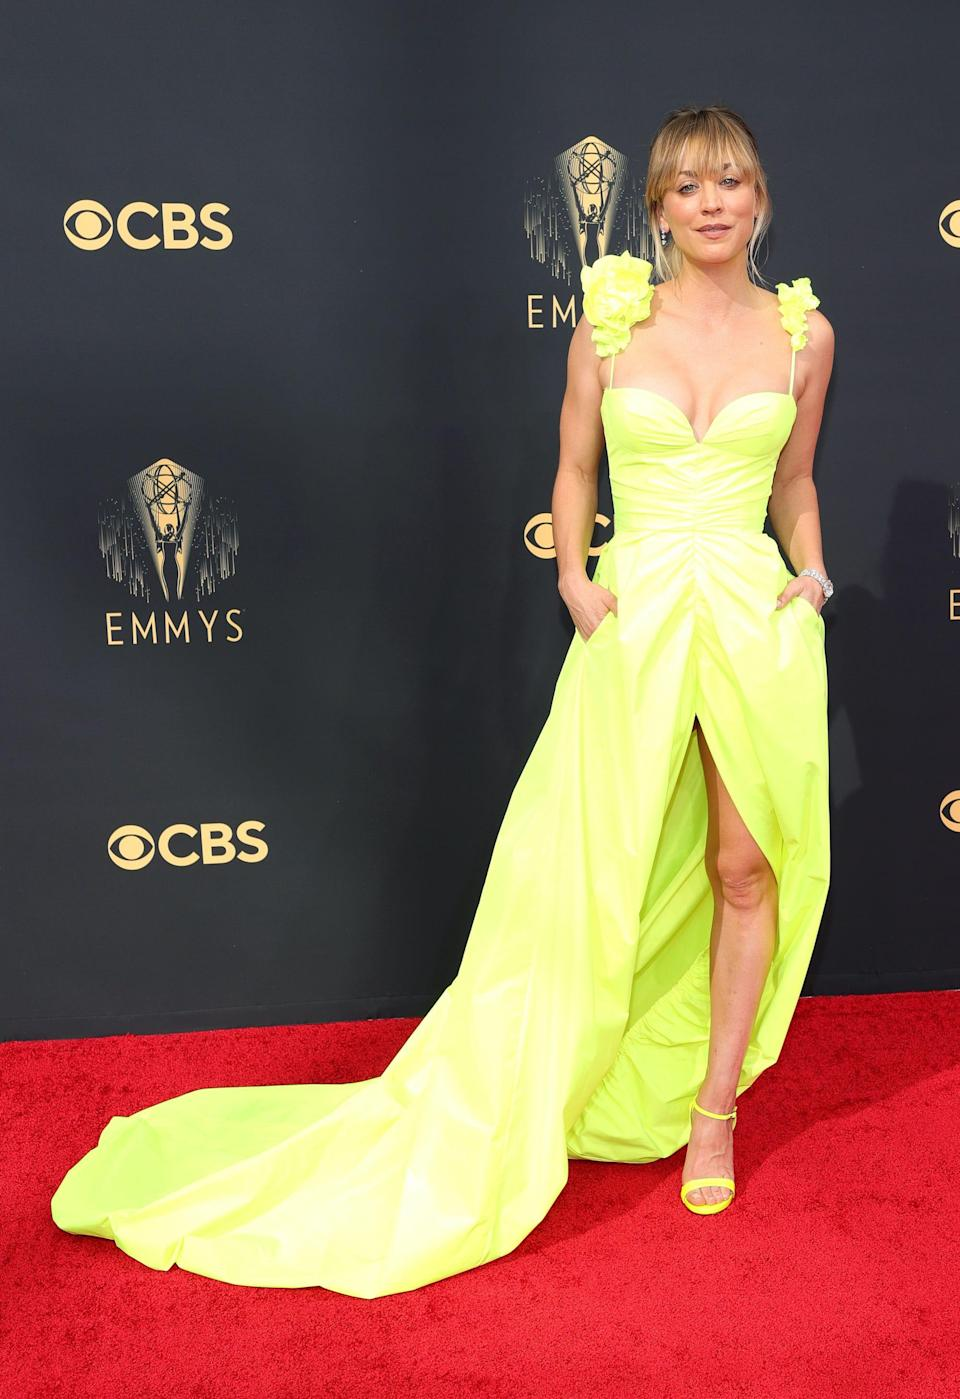 Kaley Cuoco wears a neon yellow dress on the Emmys red carpet.